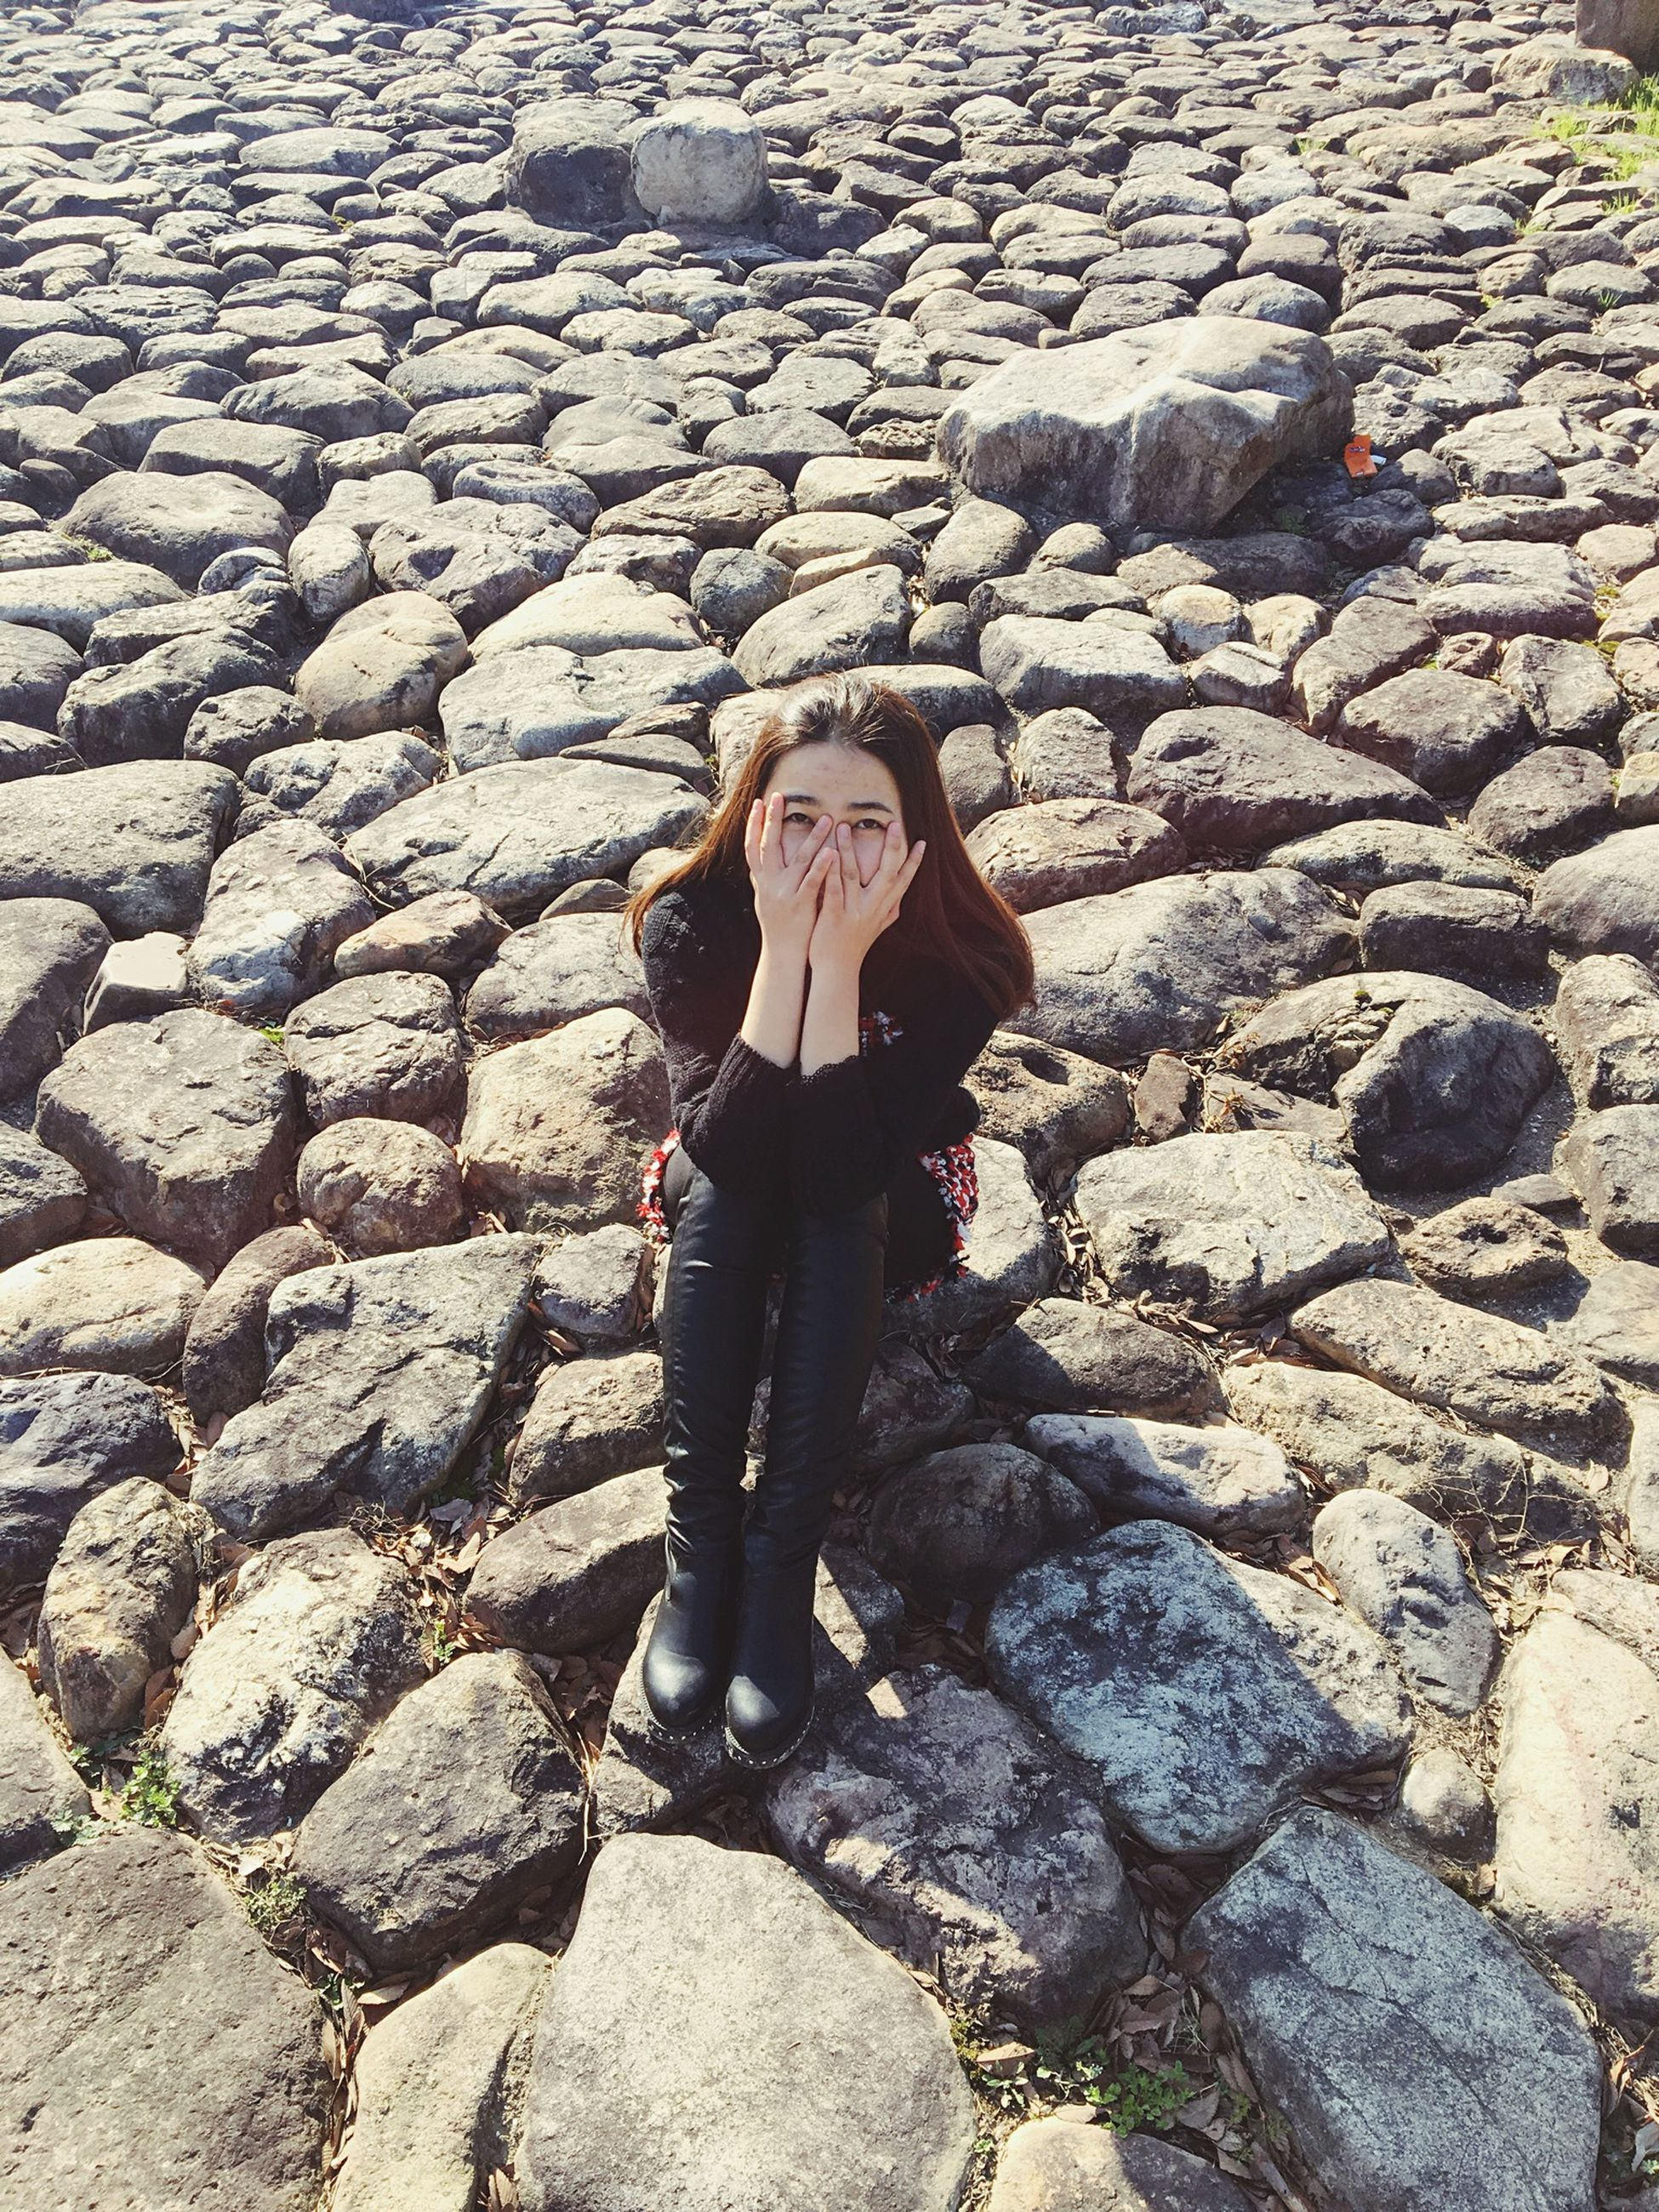 lifestyles, standing, leisure activity, full length, high angle view, casual clothing, portrait, person, front view, day, outdoors, street, looking at camera, childhood, young adult, cobblestone, young women, stone wall